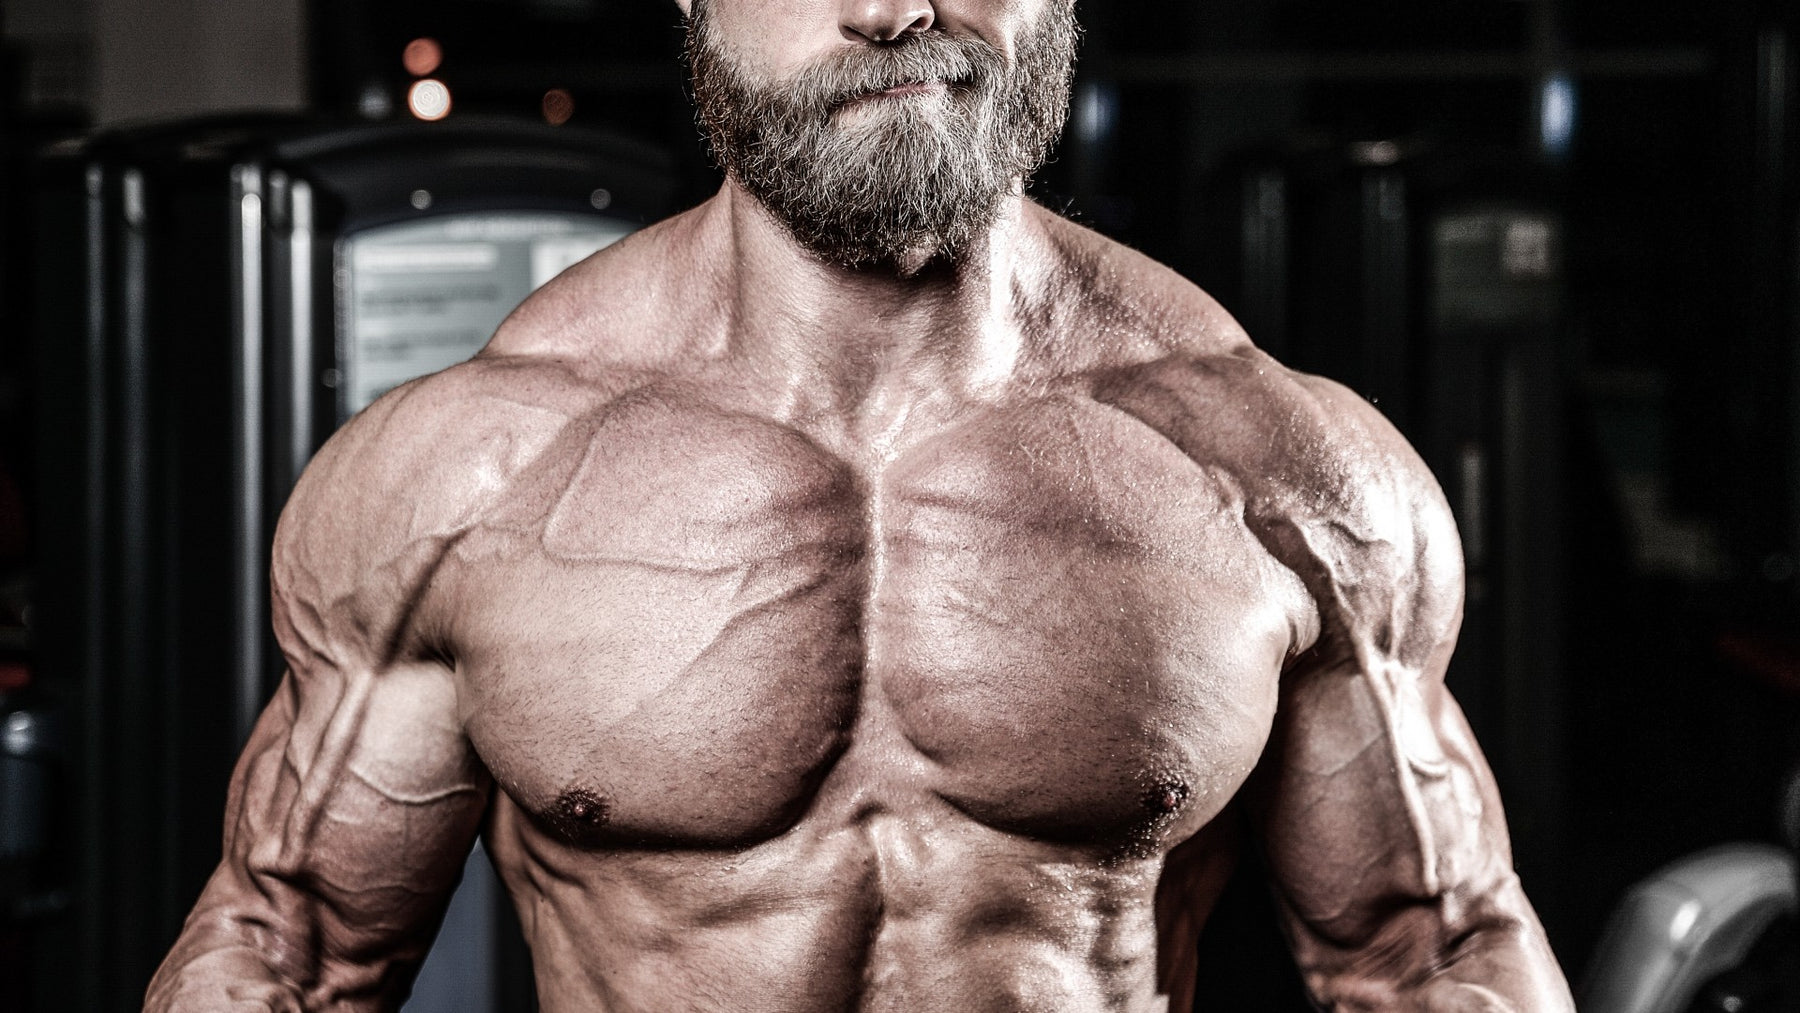 Bodybuilding Over 40: How to Train and Gain